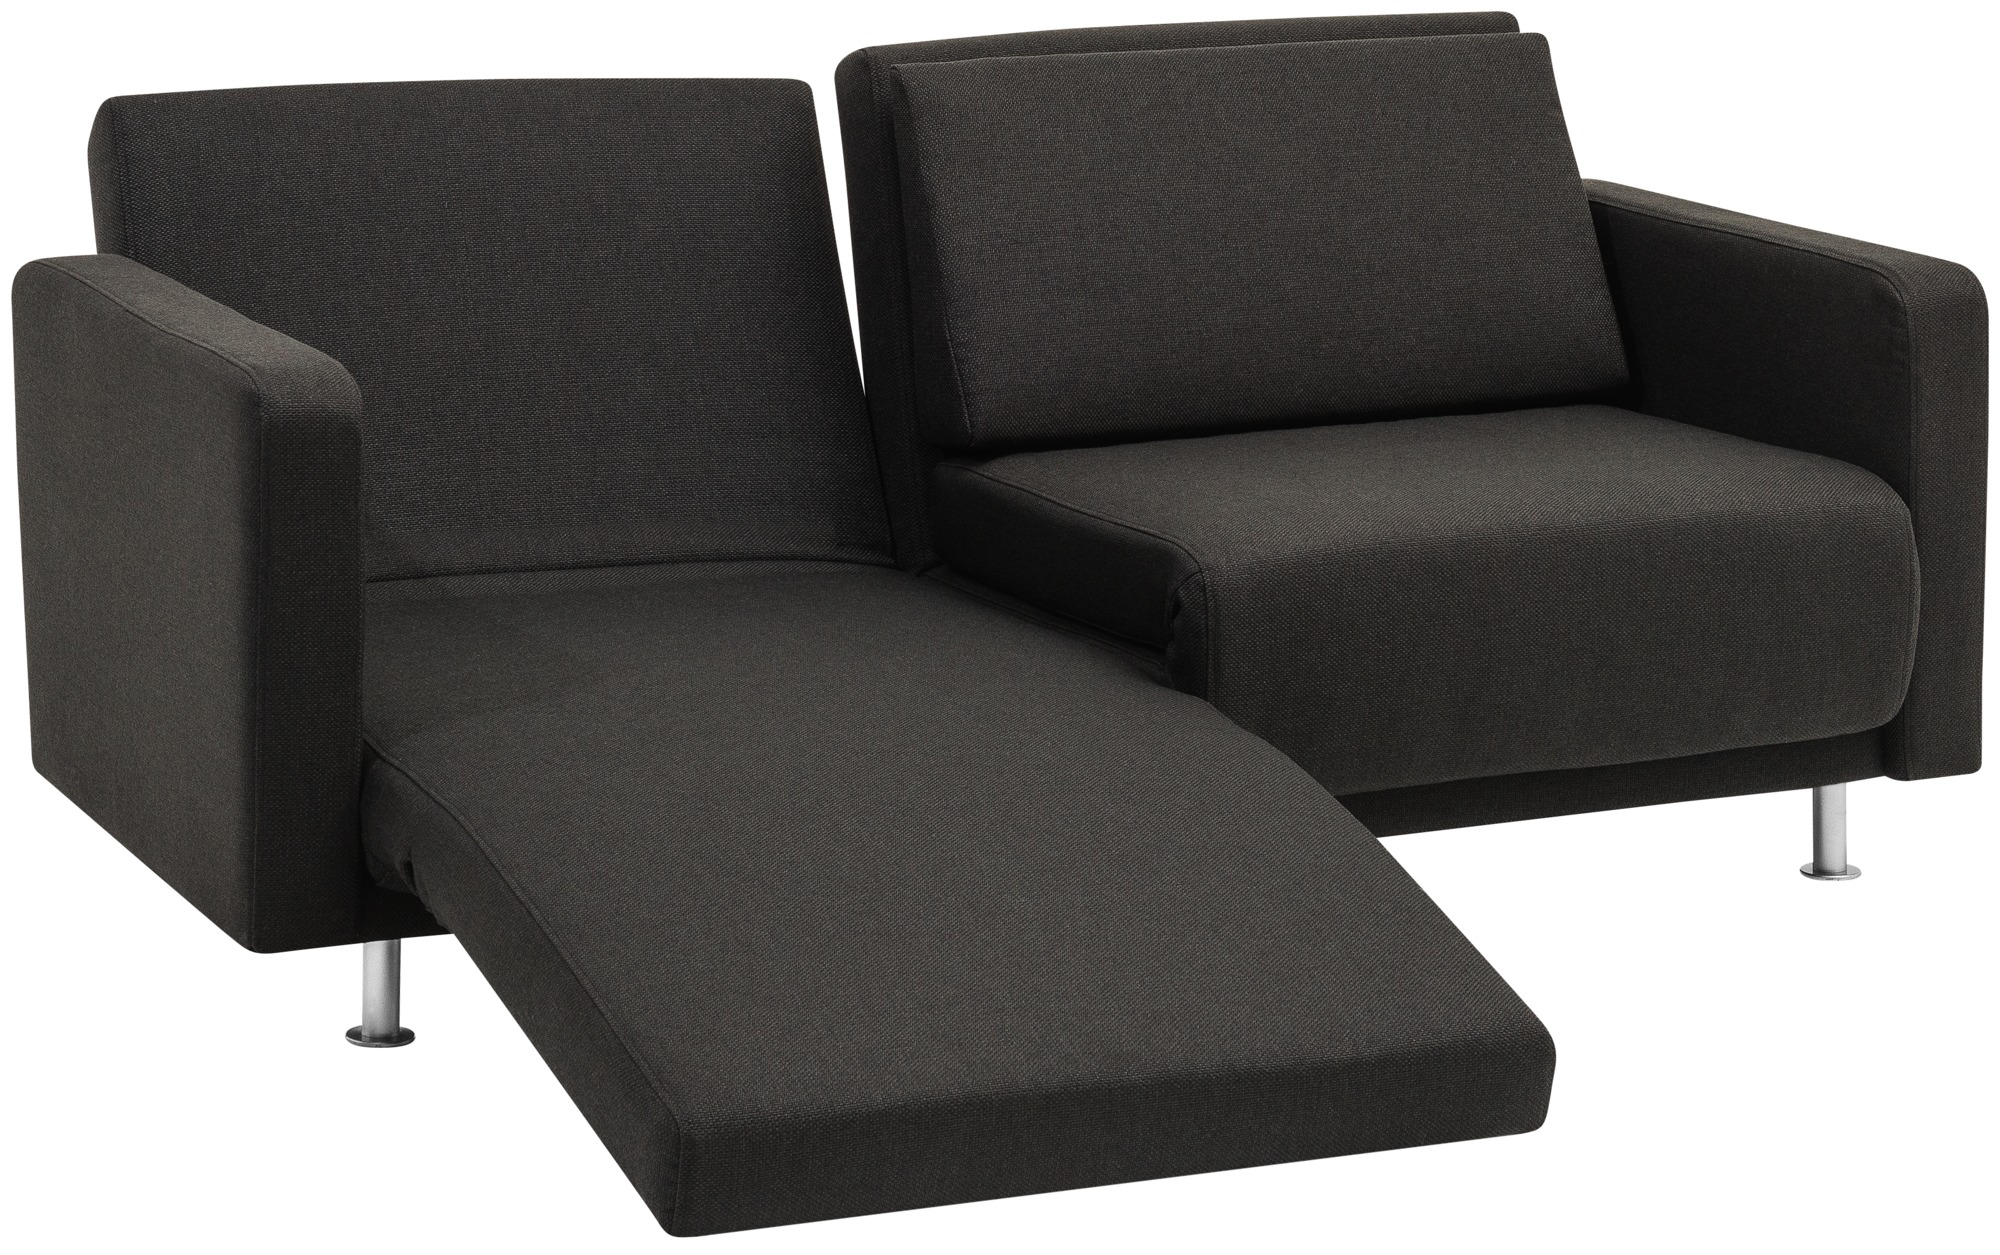 boconcept melo reclining sofa bed mah jong by roche bobois review designs